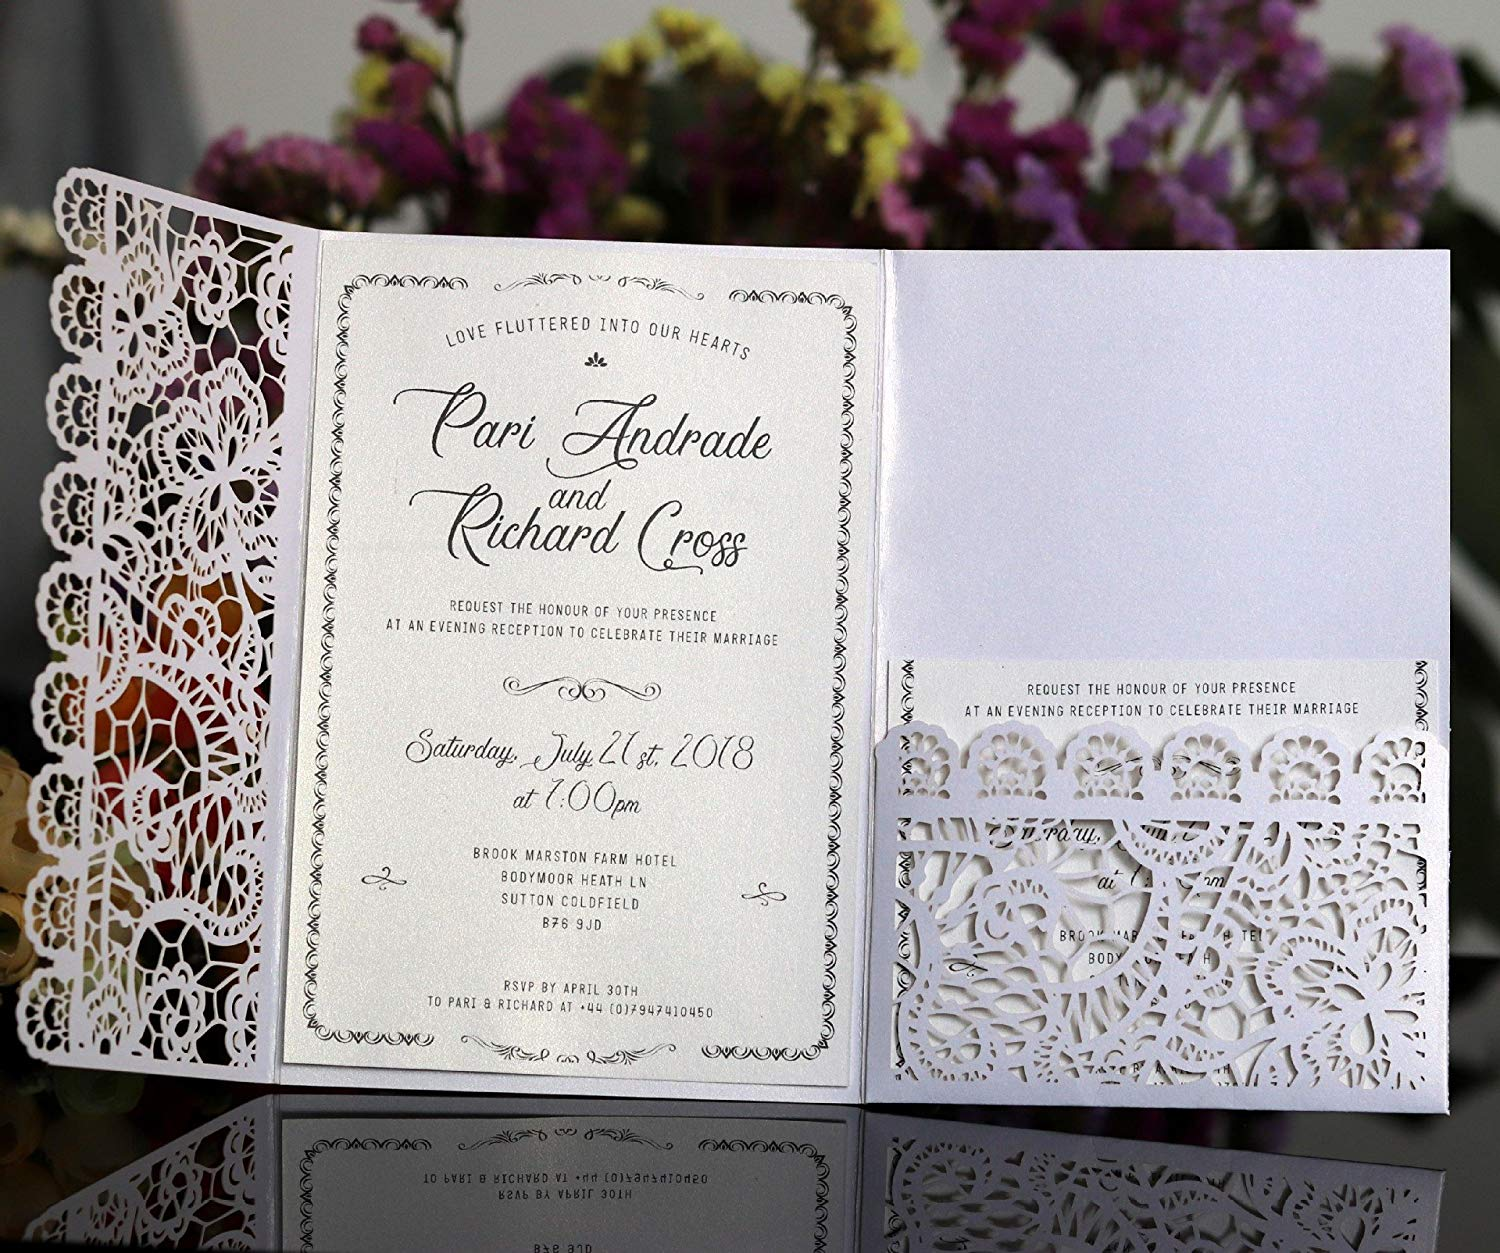 Cheap online wedding invites find online wedding invites deals on get quotations feiyi 20pcs 3 folds laser cut lace flower pattern invitations cards for birthday baby shower wedding filmwisefo